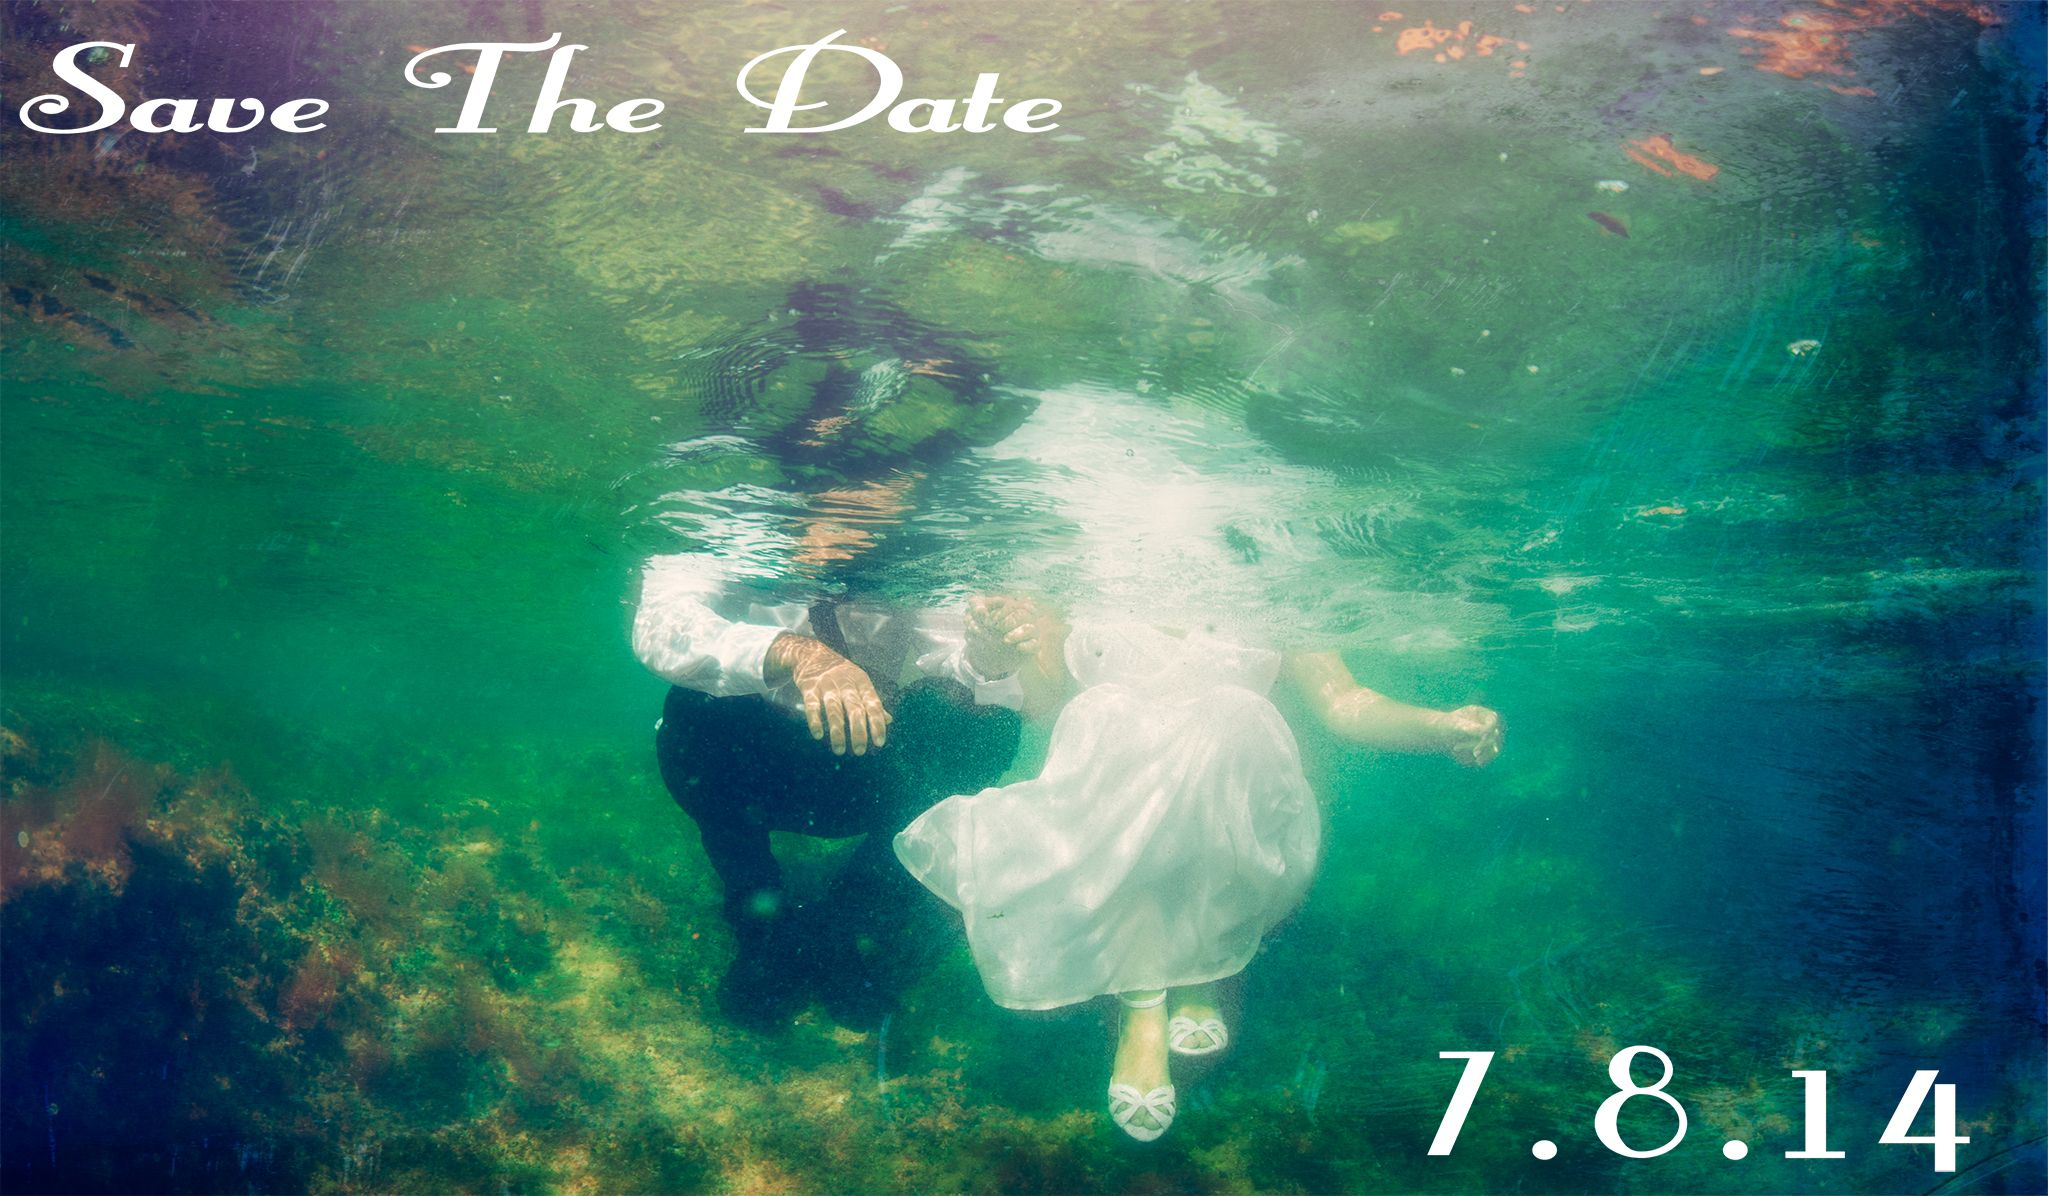 #Wedding #Save_The_Date